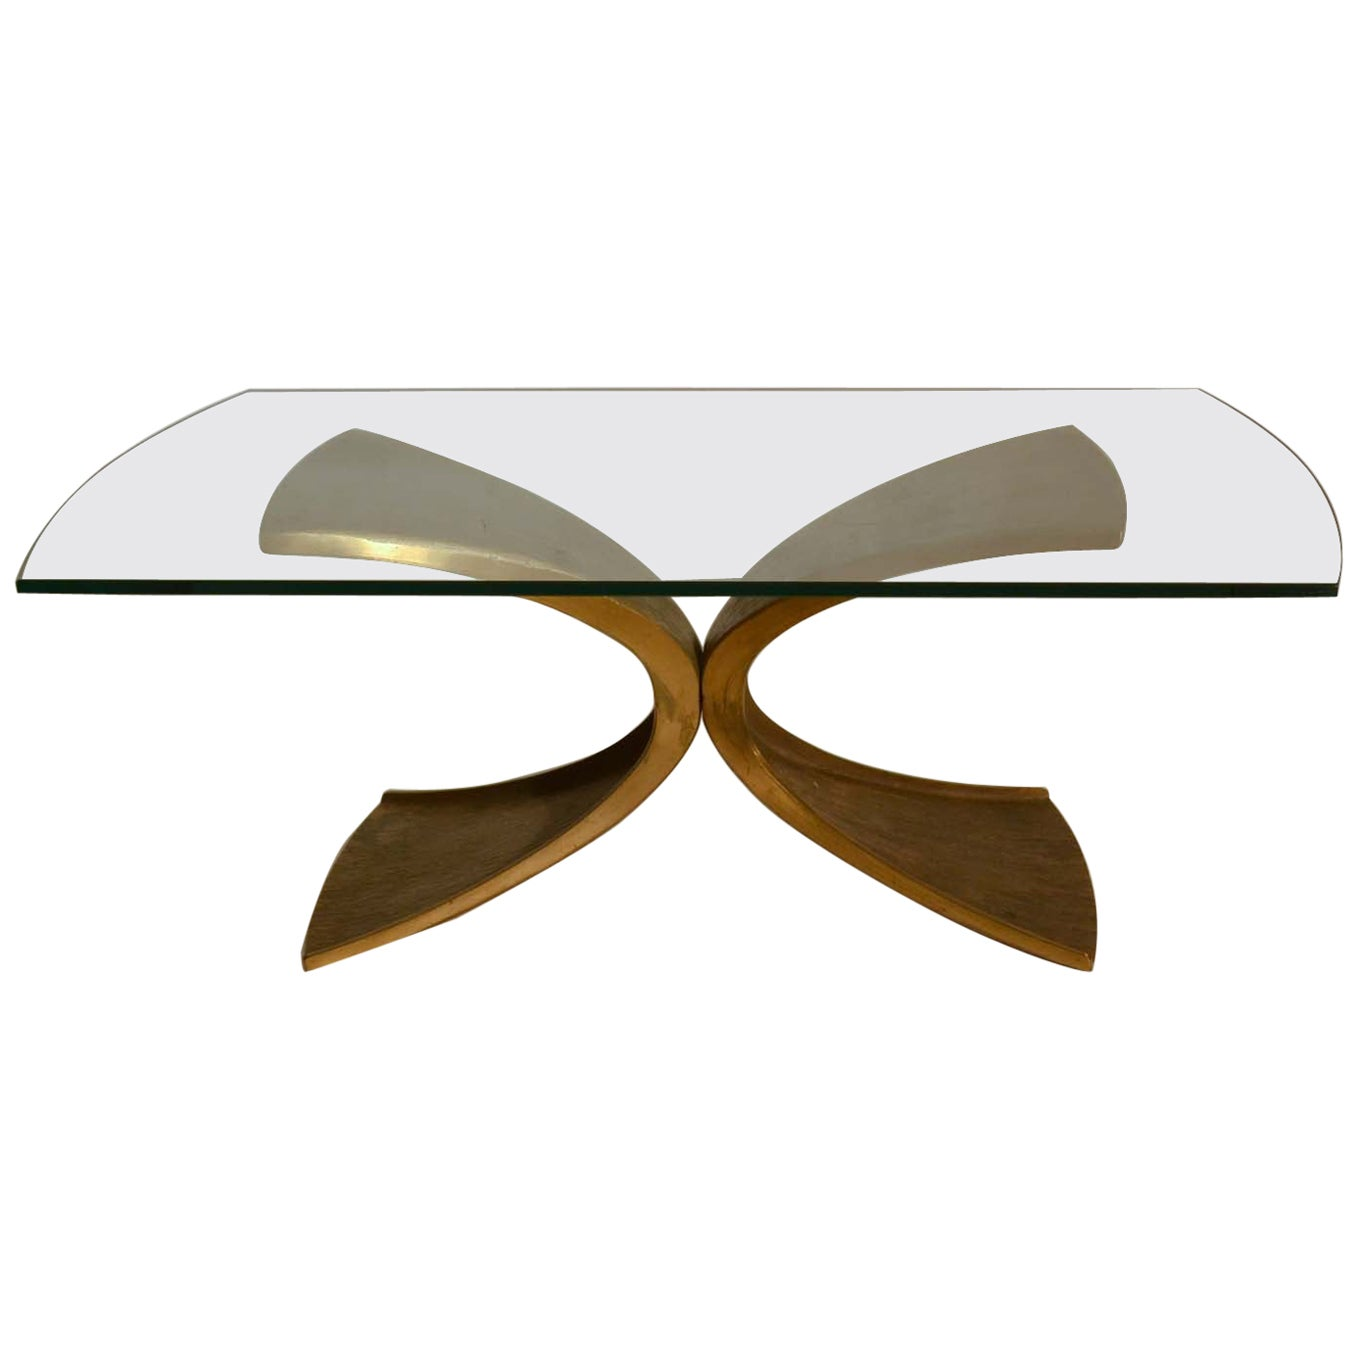 Brutalist Bronze and Glass Coffee Table by Luciano Frigerio, 1980's